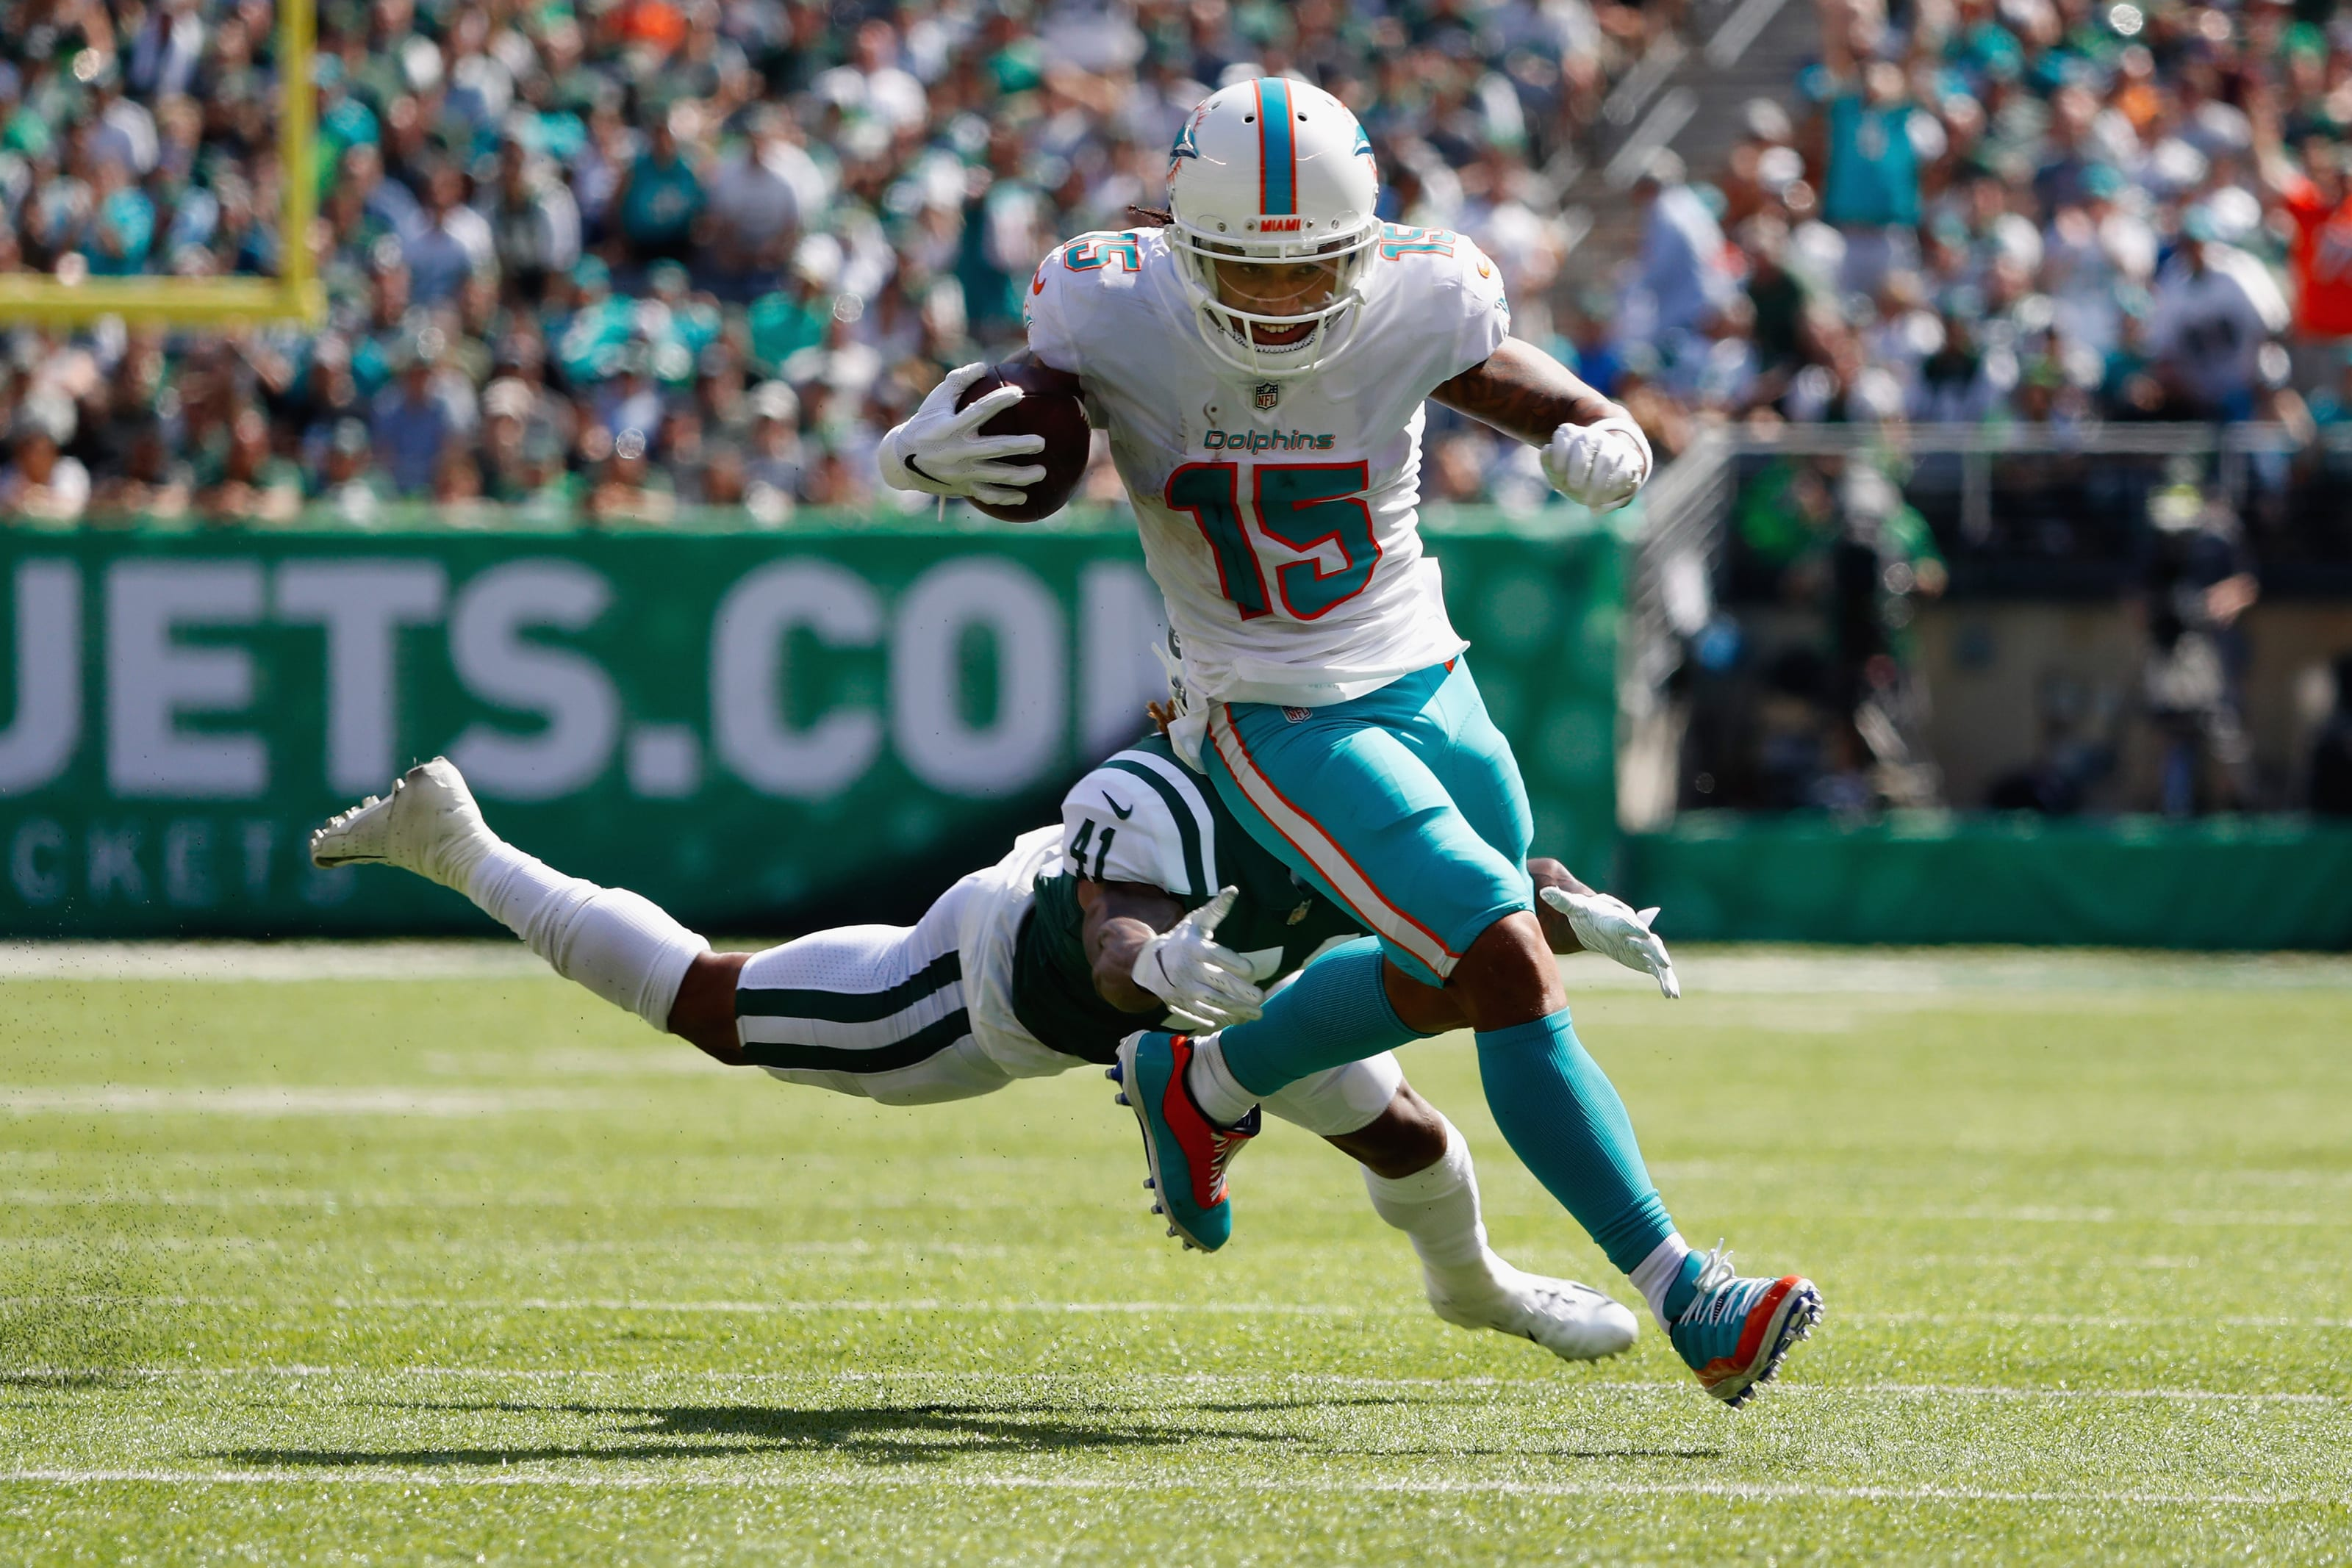 New England Patriots loss to Miami Dolphins dumps them